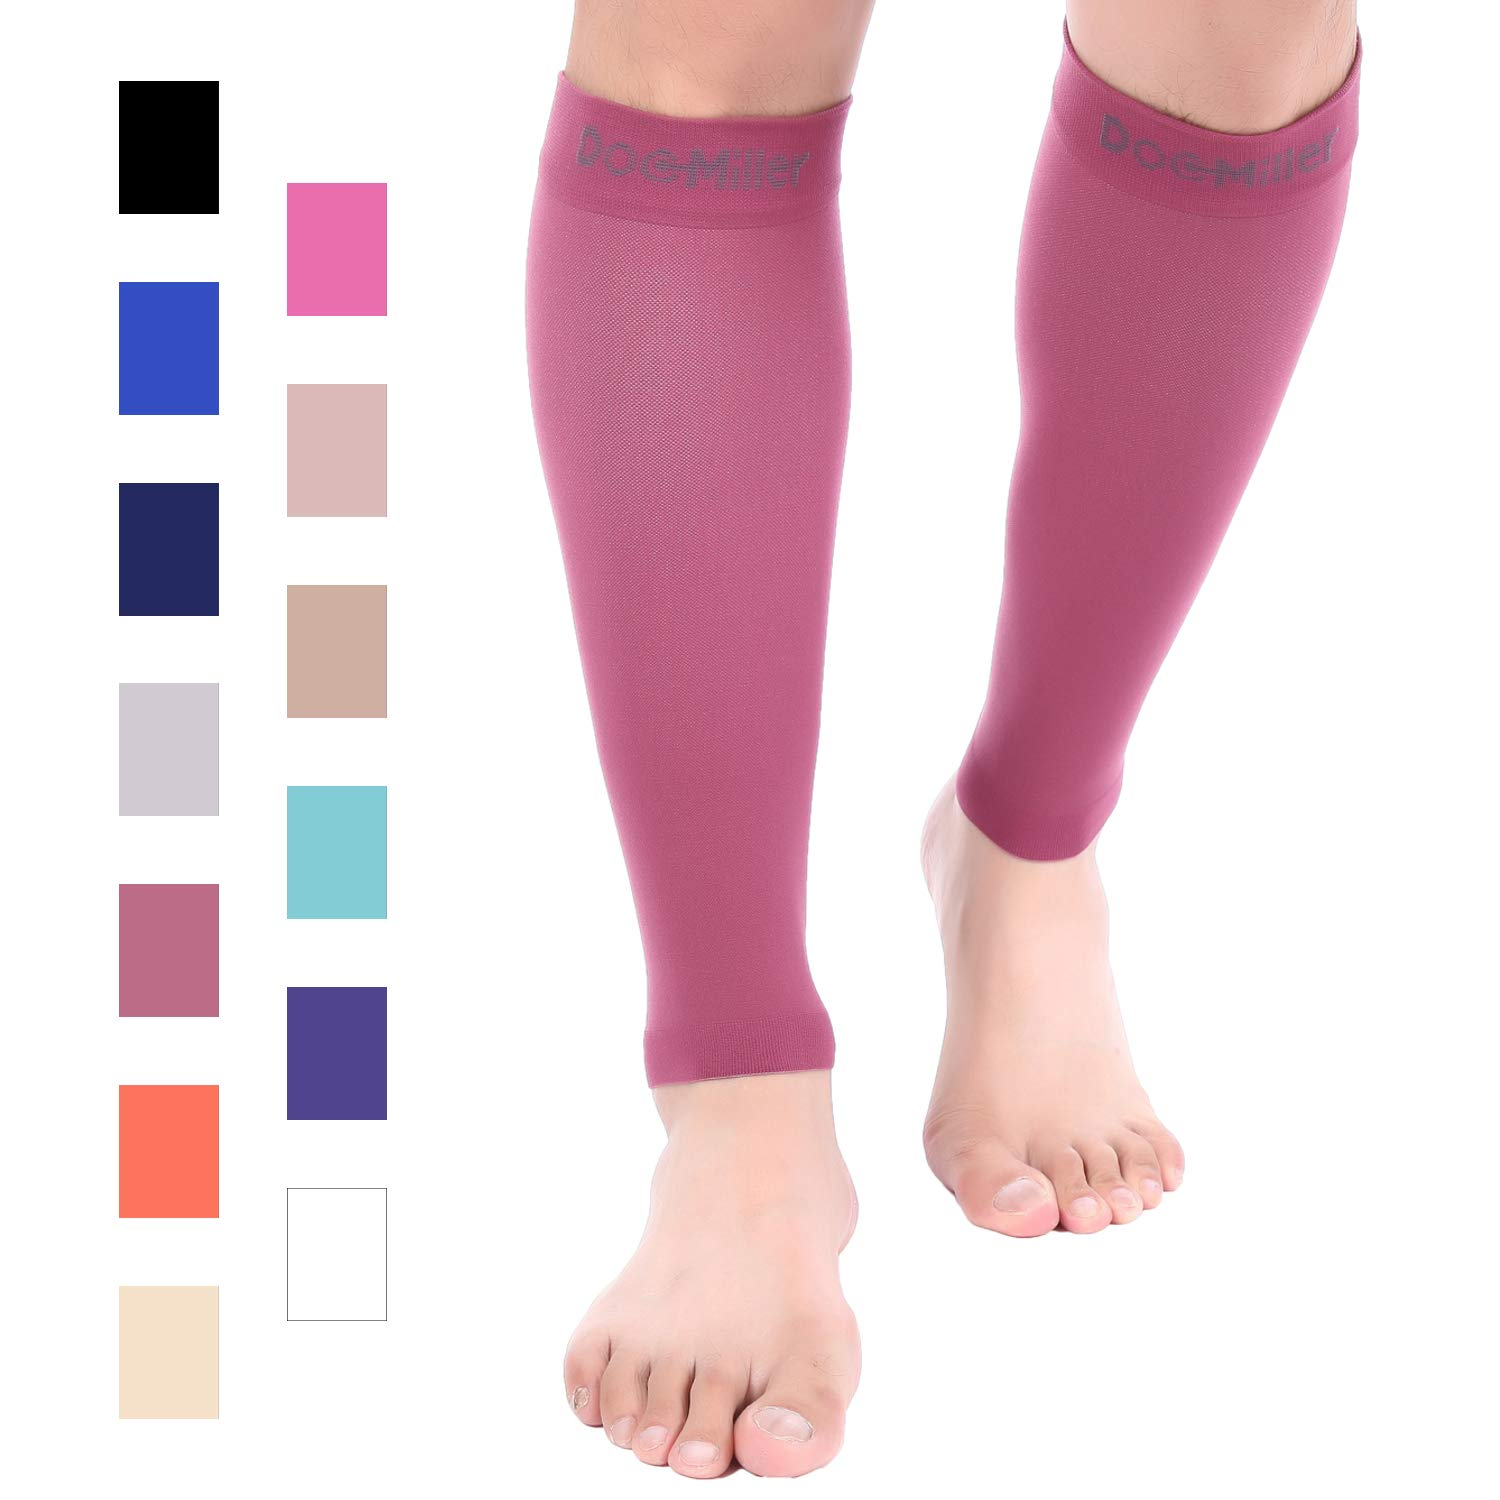 Doc Miller Premium Calf Compression Sleeve 1 Pair 20-30mmHg Strong Calf Support Graduated Pressure for Sports Running Muscle Recovery Shin Splints Varicose Veins (Maroon, 2-Pack, 3X-Large) by Doc Miller